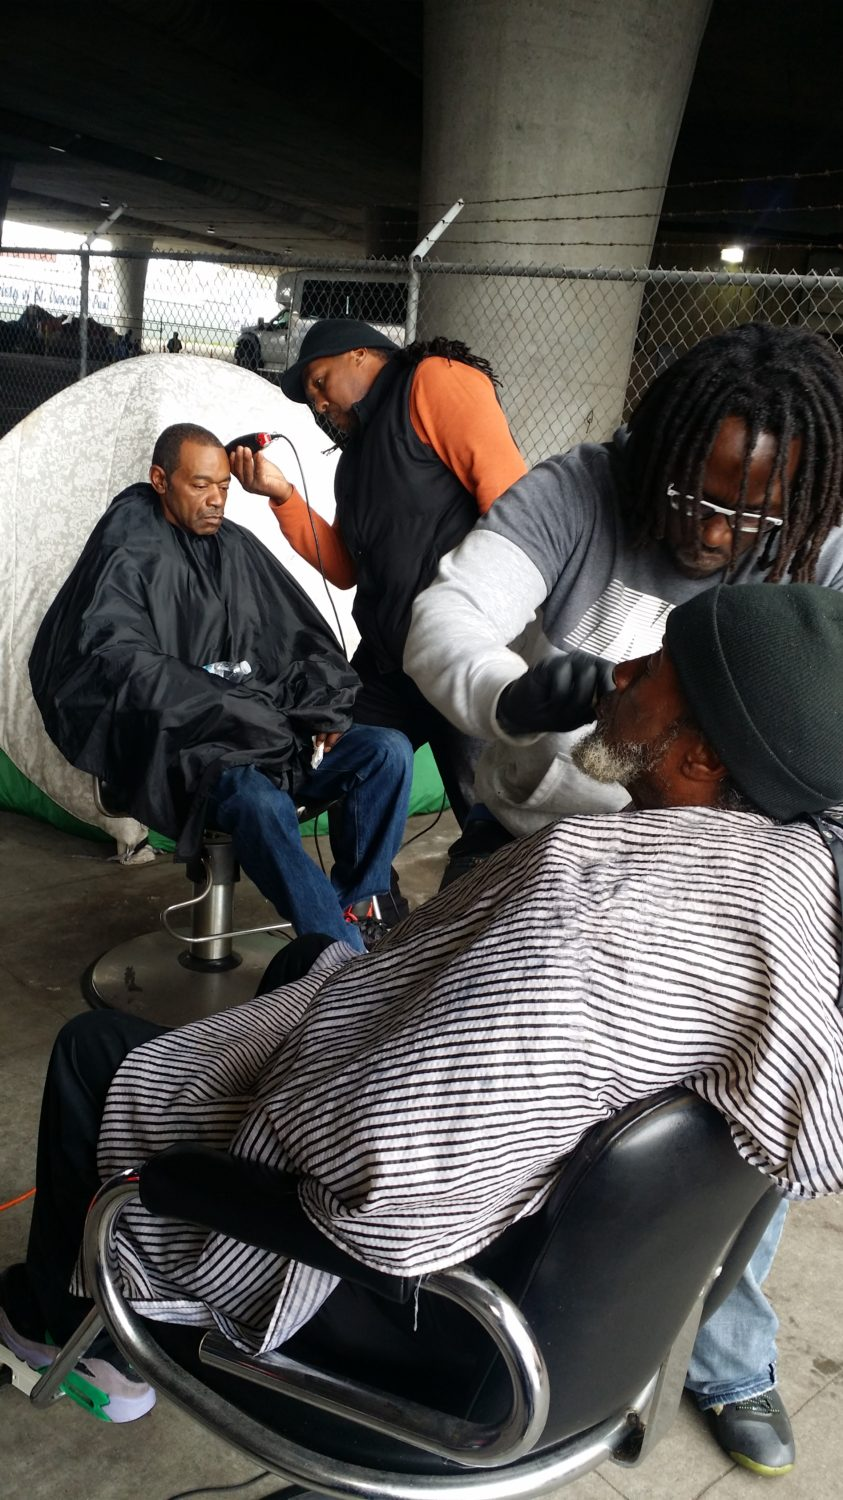 Struggle-to-Bubble-barbering-at-homeless-encampment, Struggle to Bubble is still empowering homeless people amid the pandemic in Oakland, Local News & Views